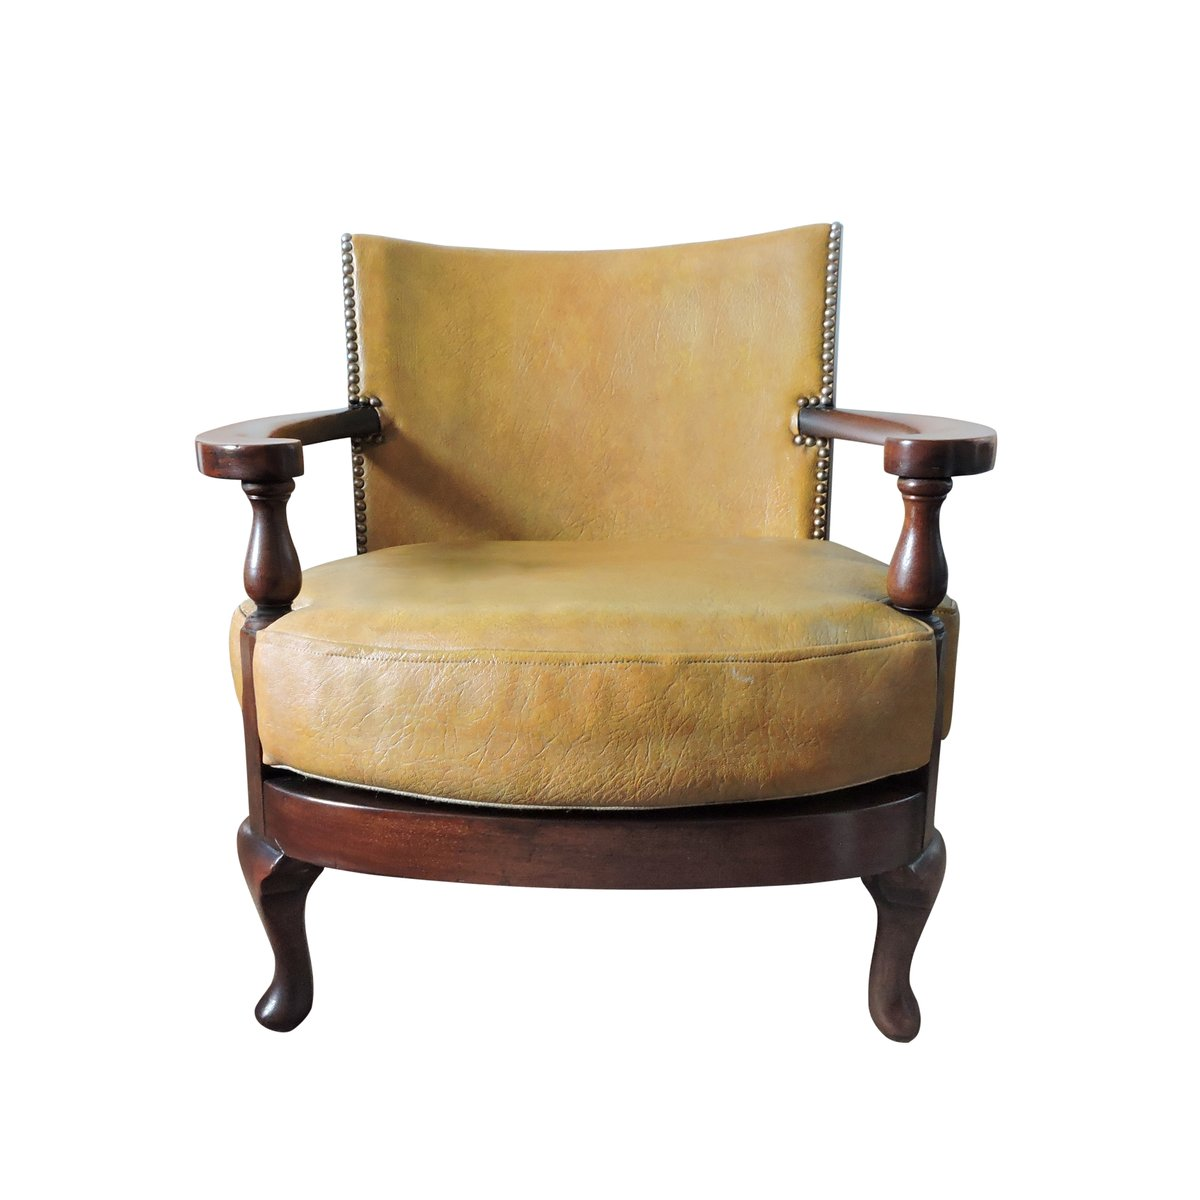 Wood Club Chair Vintage Mustard Yellow Leather And Wood Tub Chair